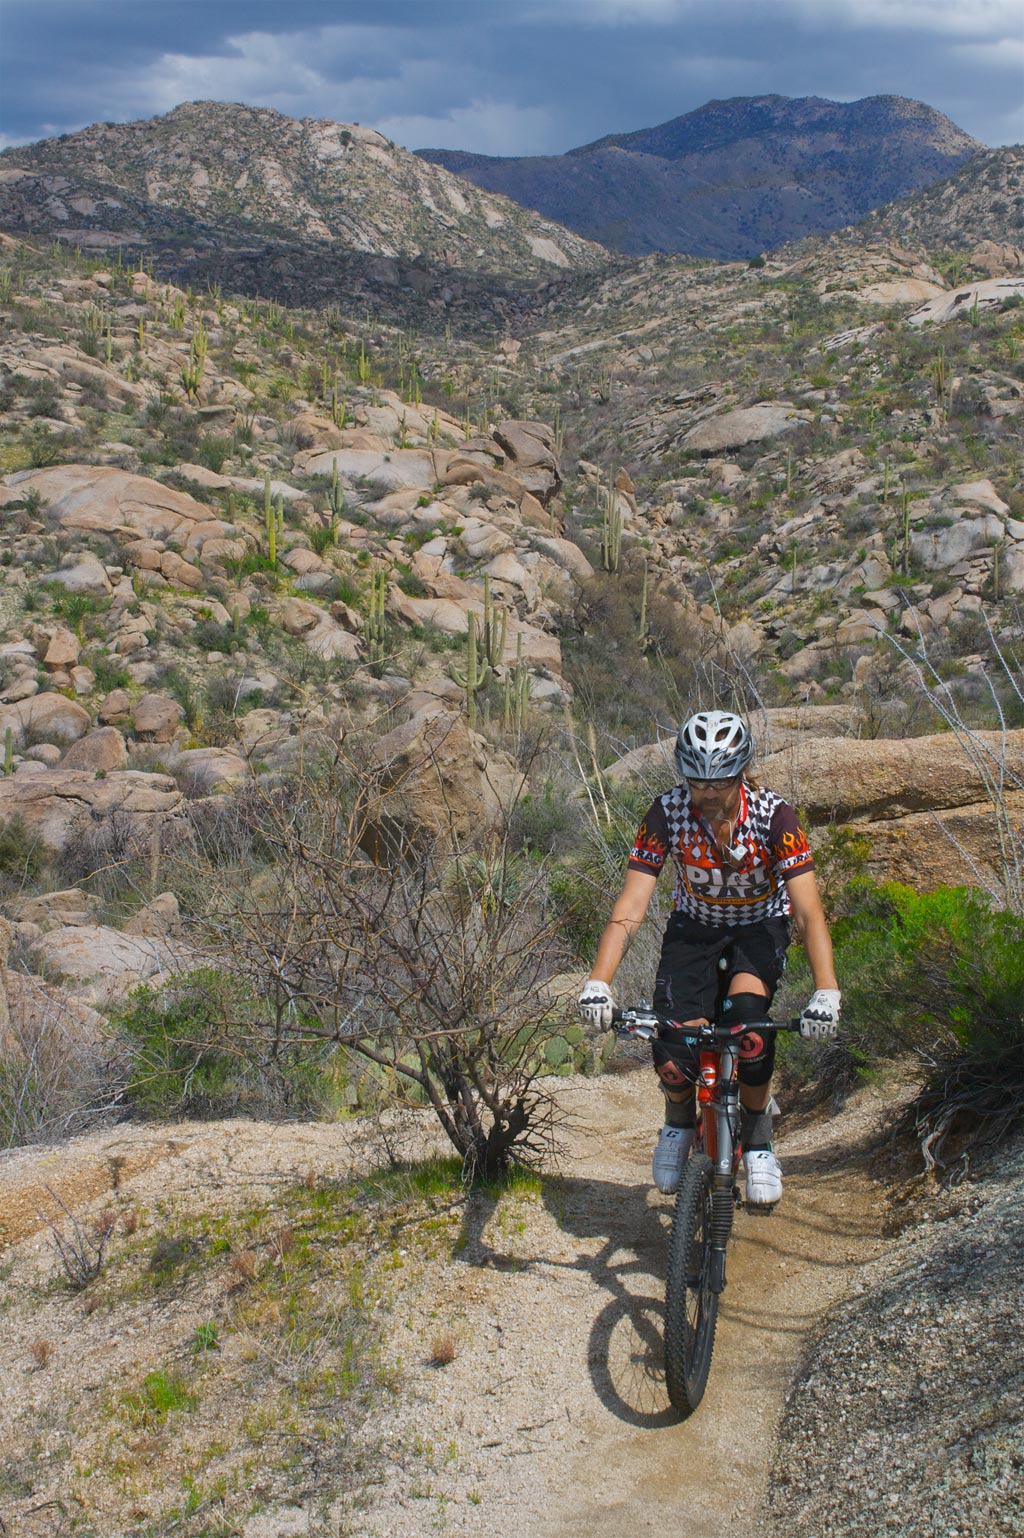 Saturday:Trails are excellent, desert ready to 'pop'-img_7319_mtbr.jpg